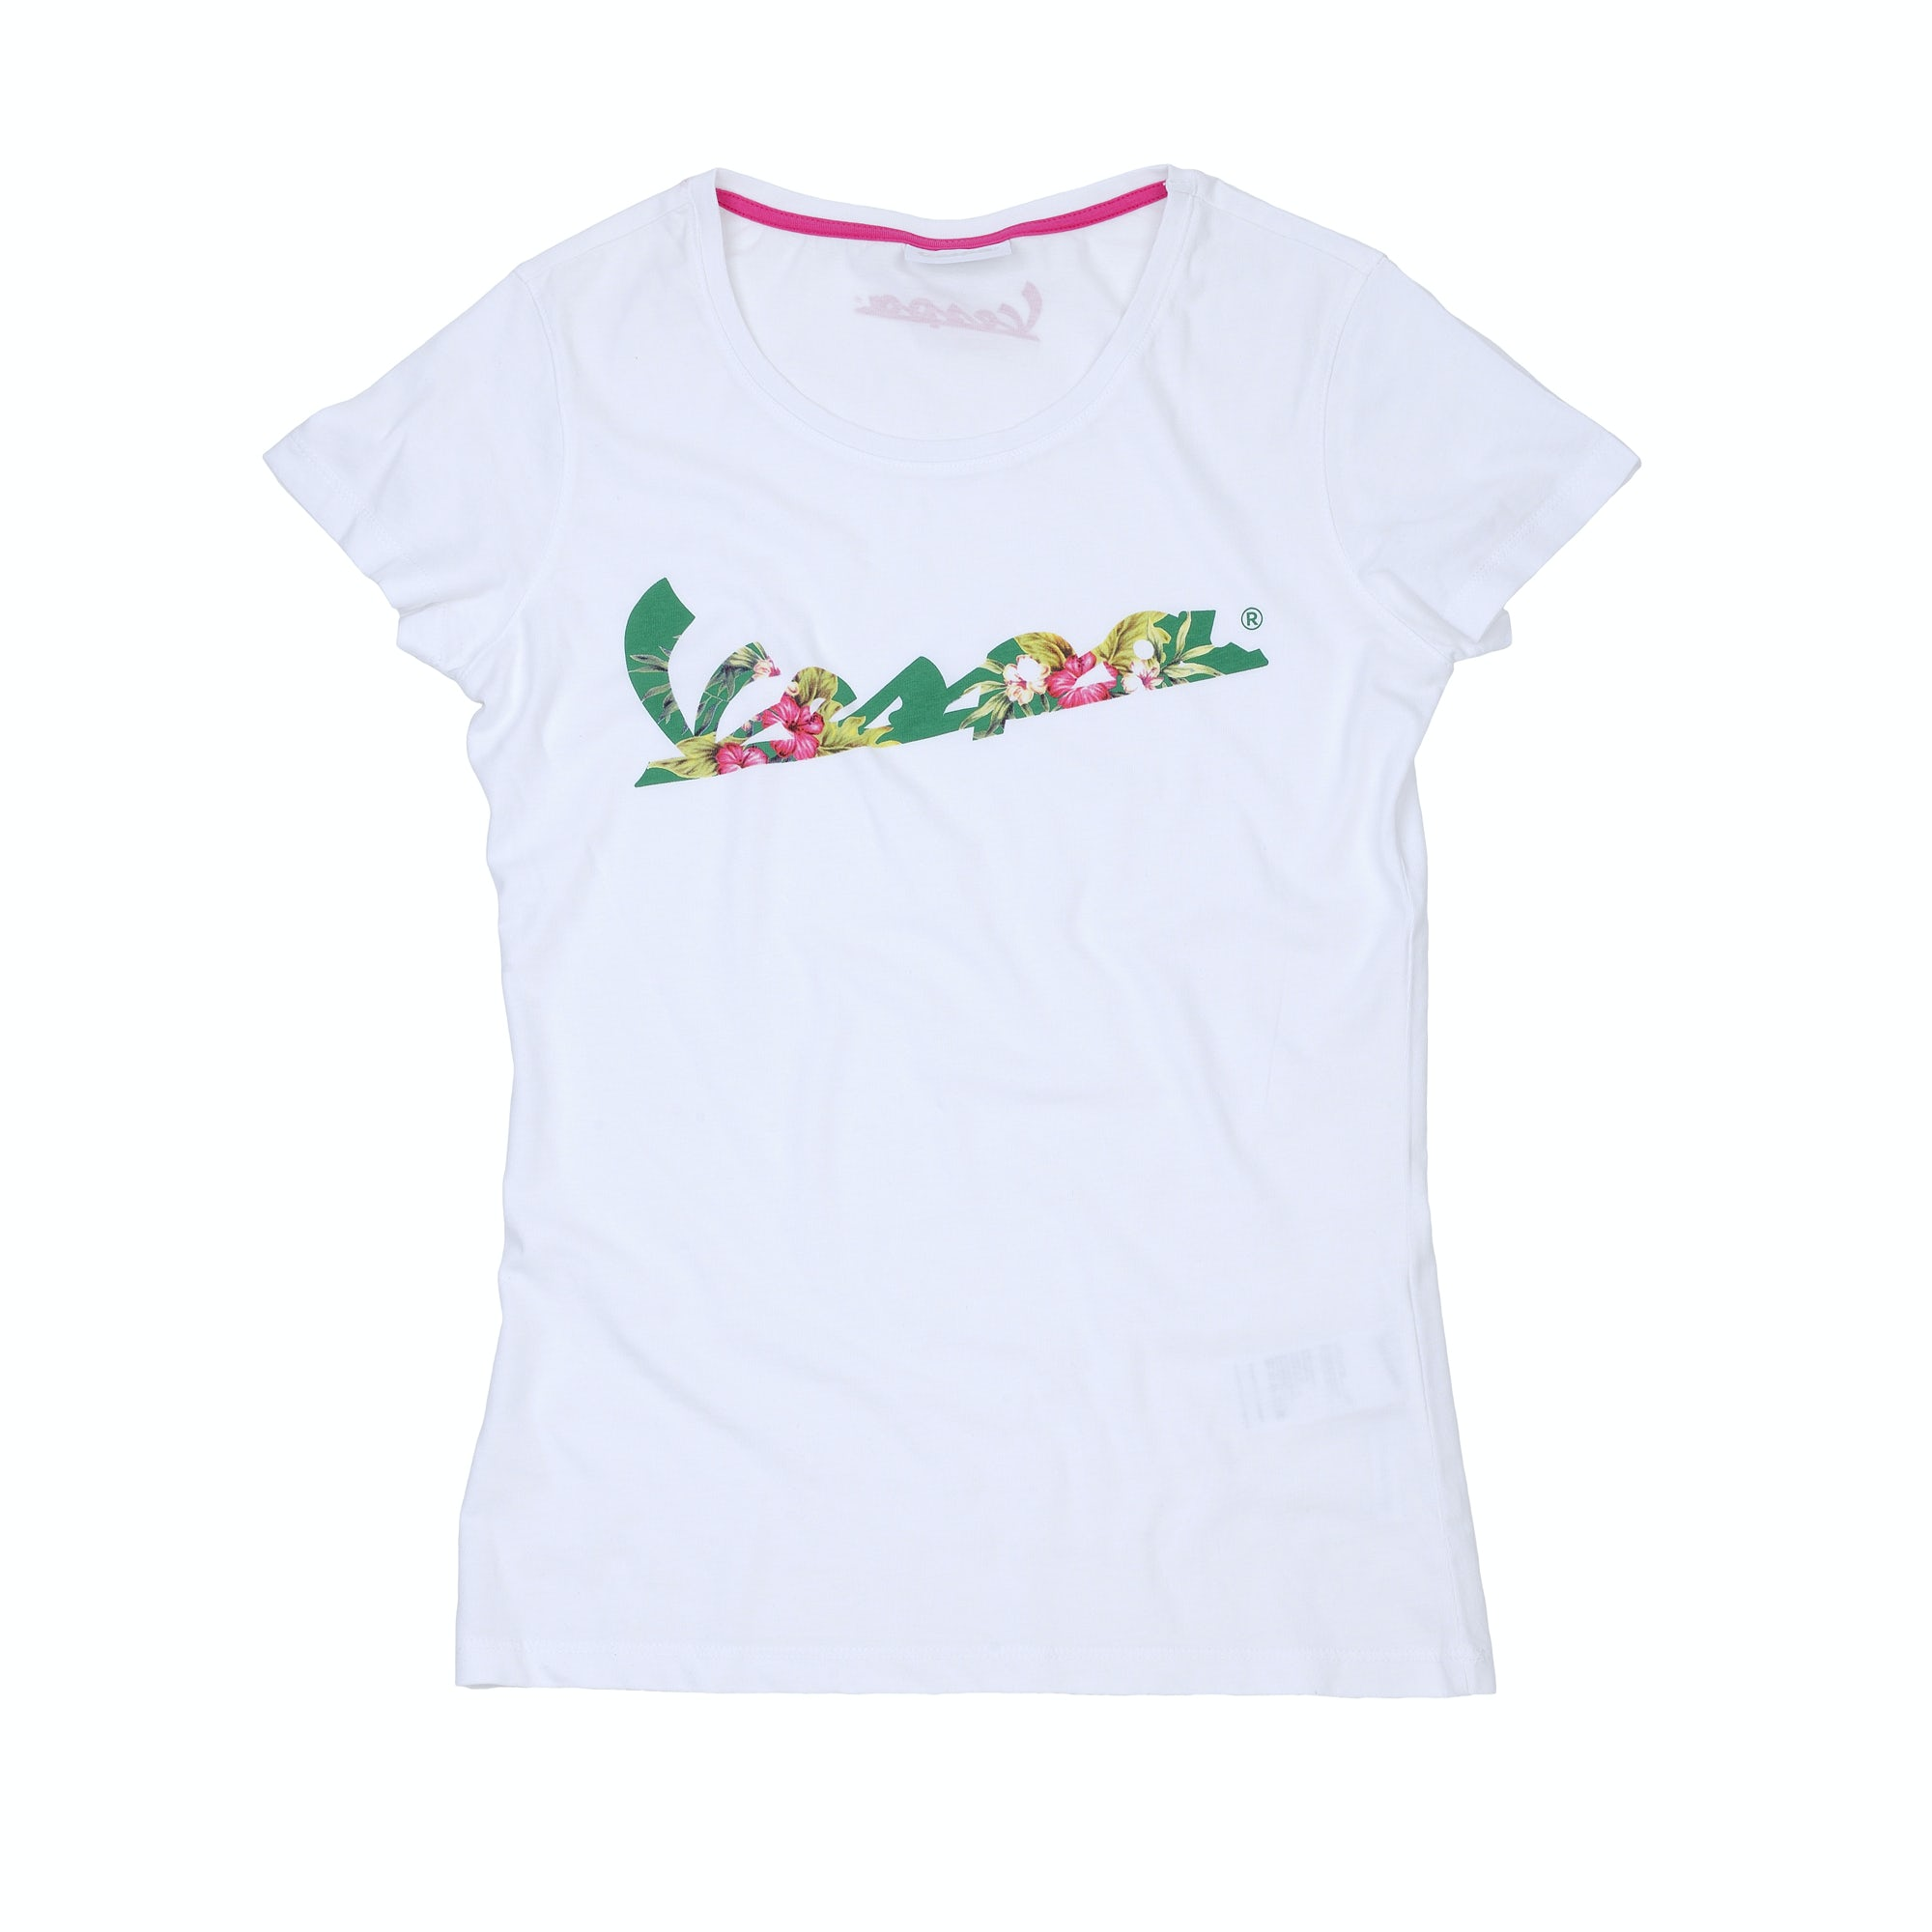 vespa flower t shirt t shirts clothing. Black Bedroom Furniture Sets. Home Design Ideas